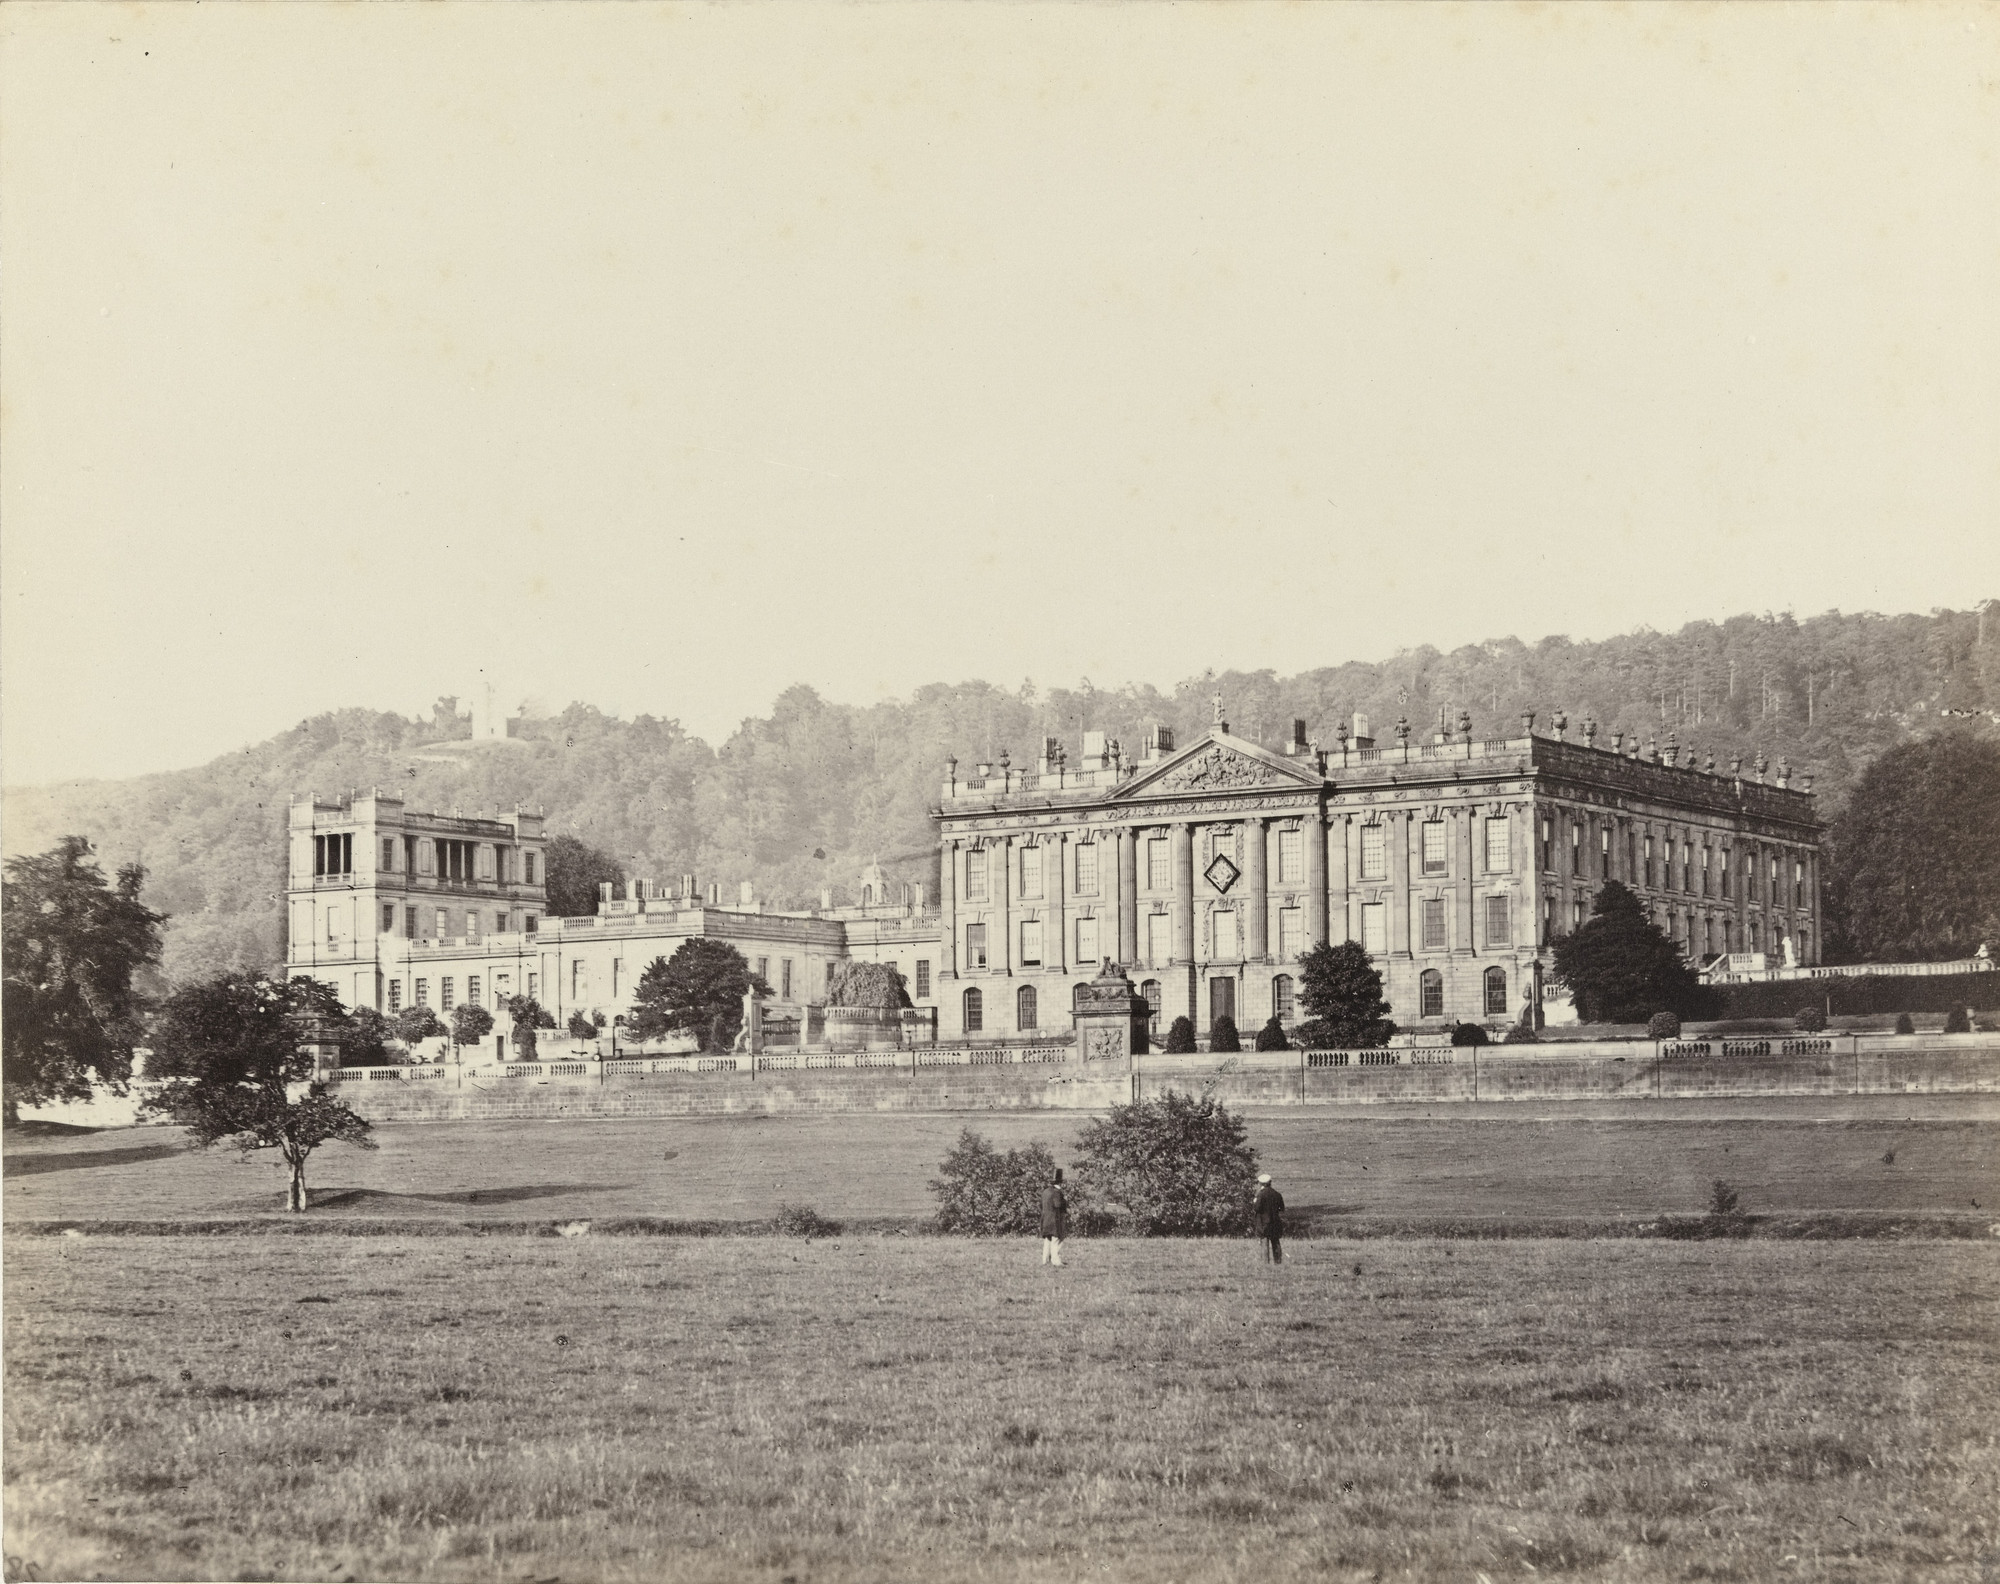 Francis Frith. Chatsworth. c. 1860